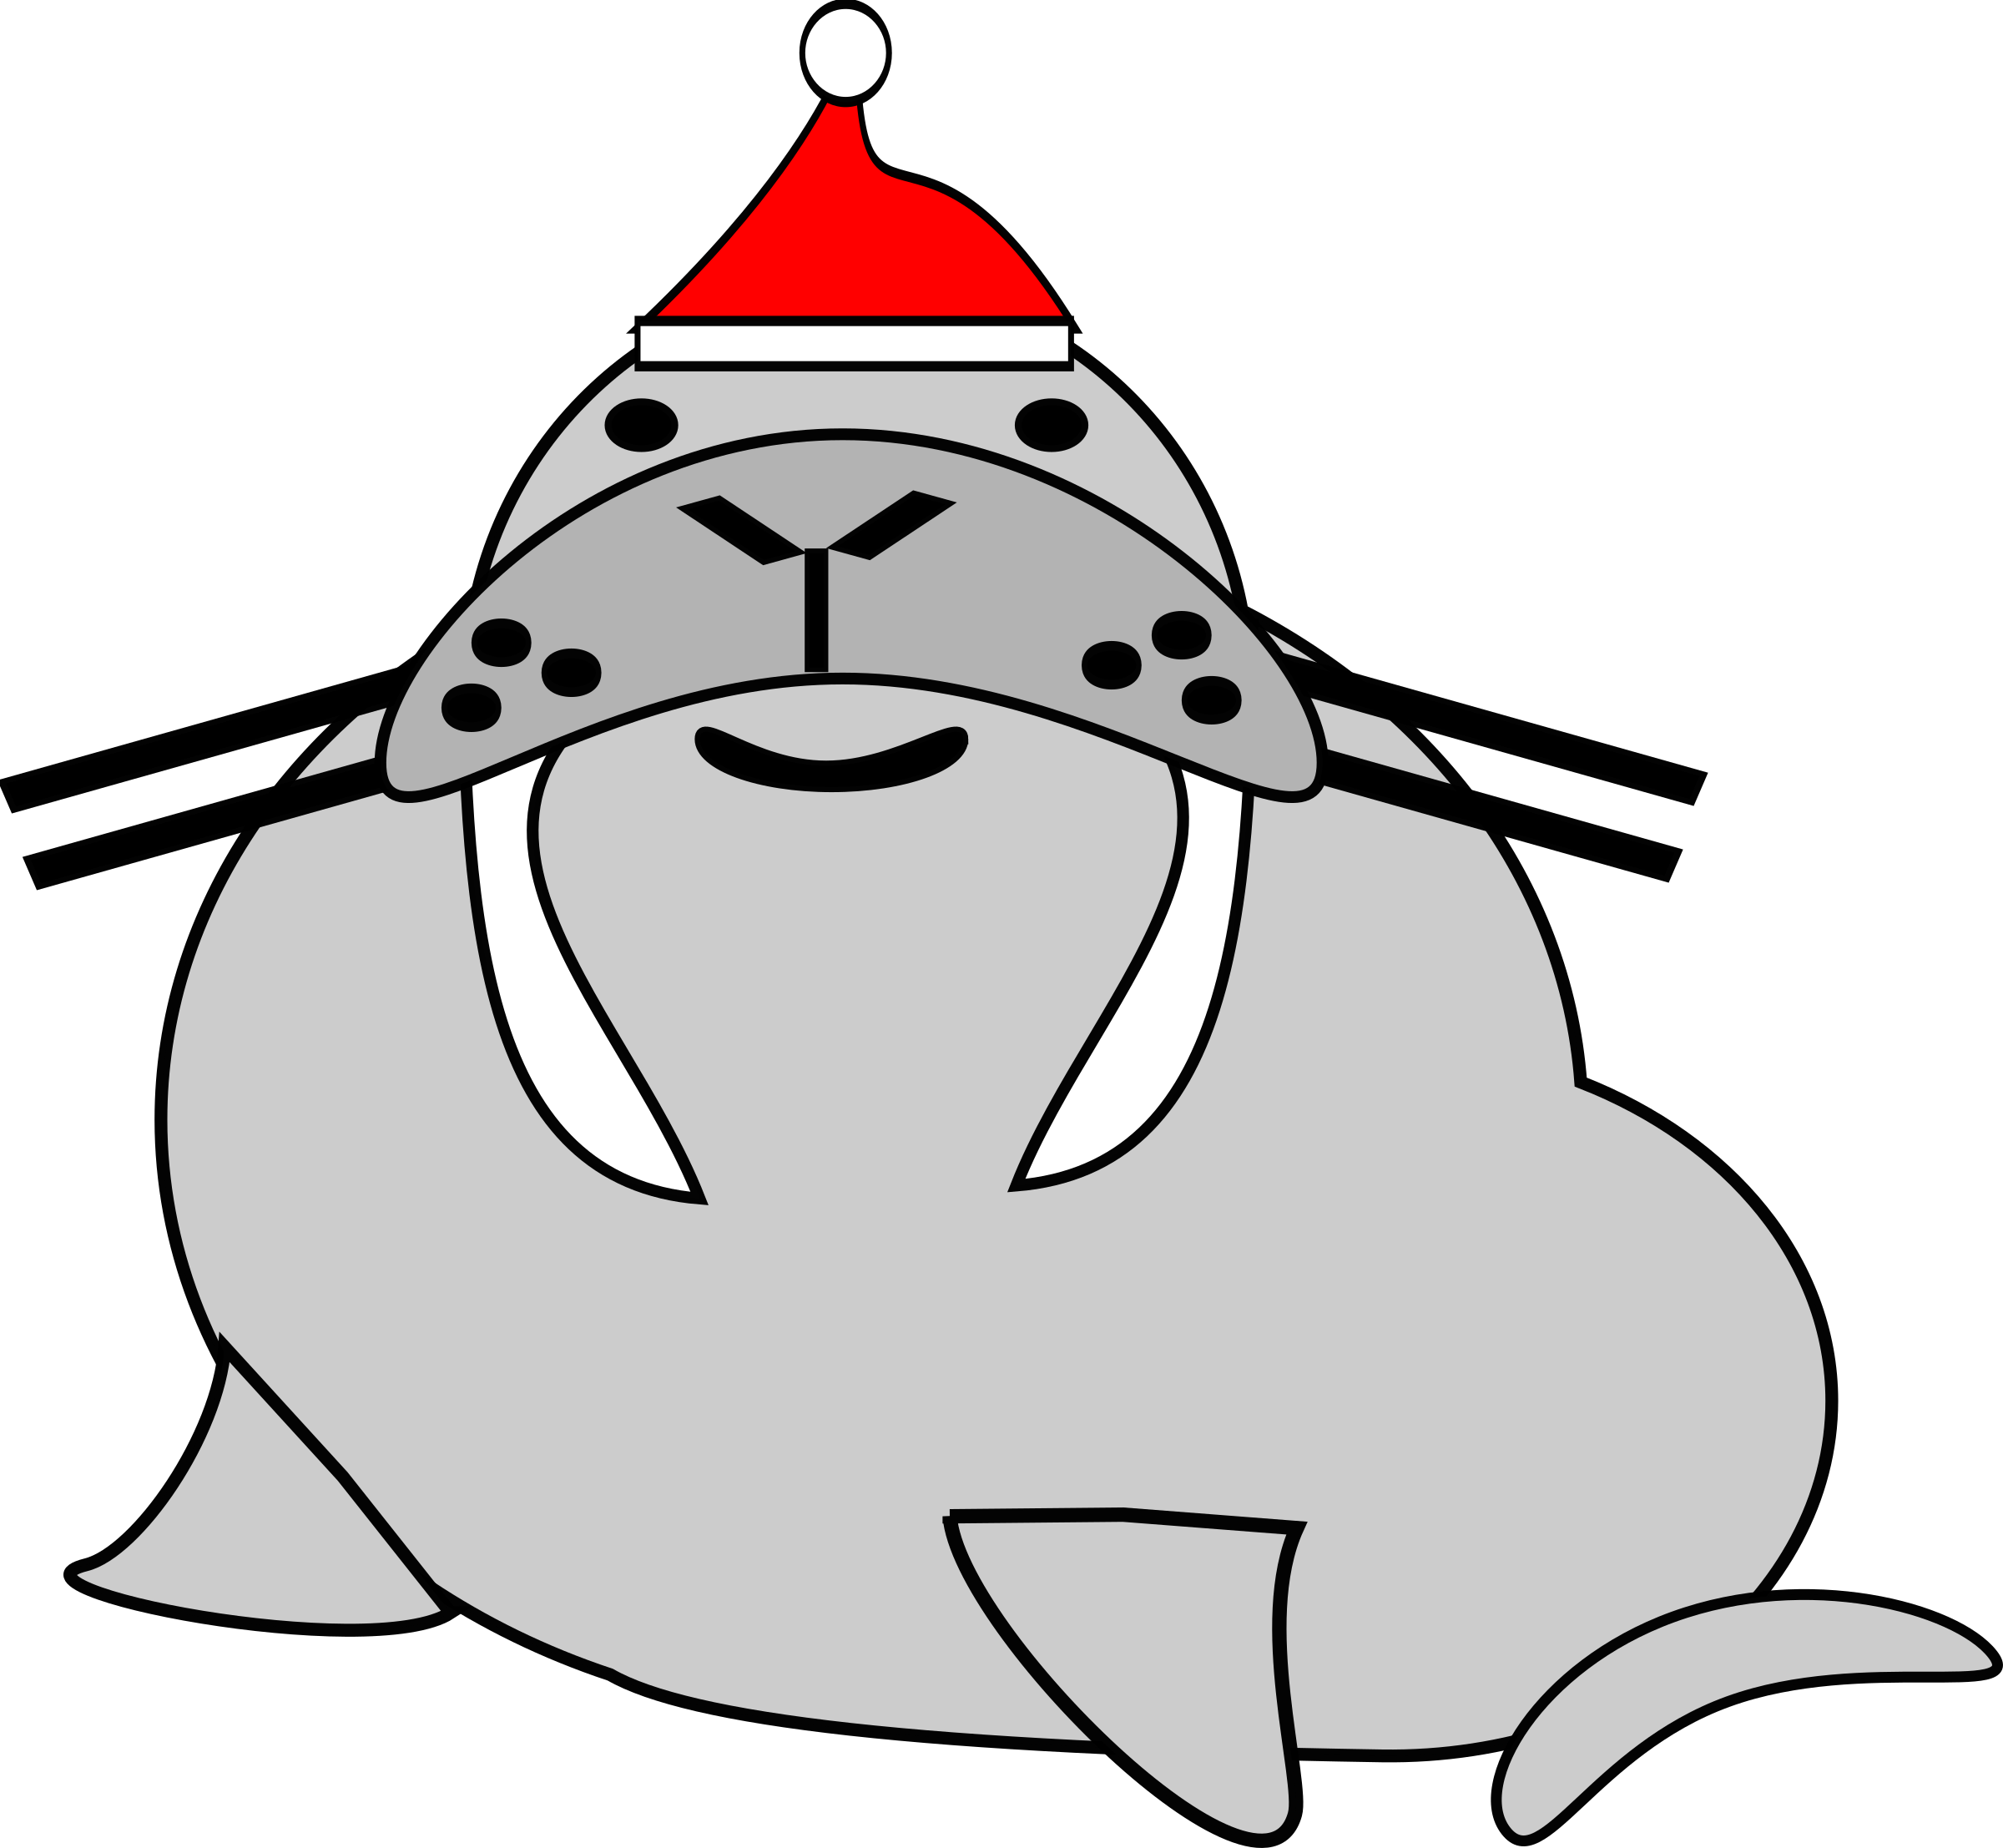 santa walrus by PeterBrough